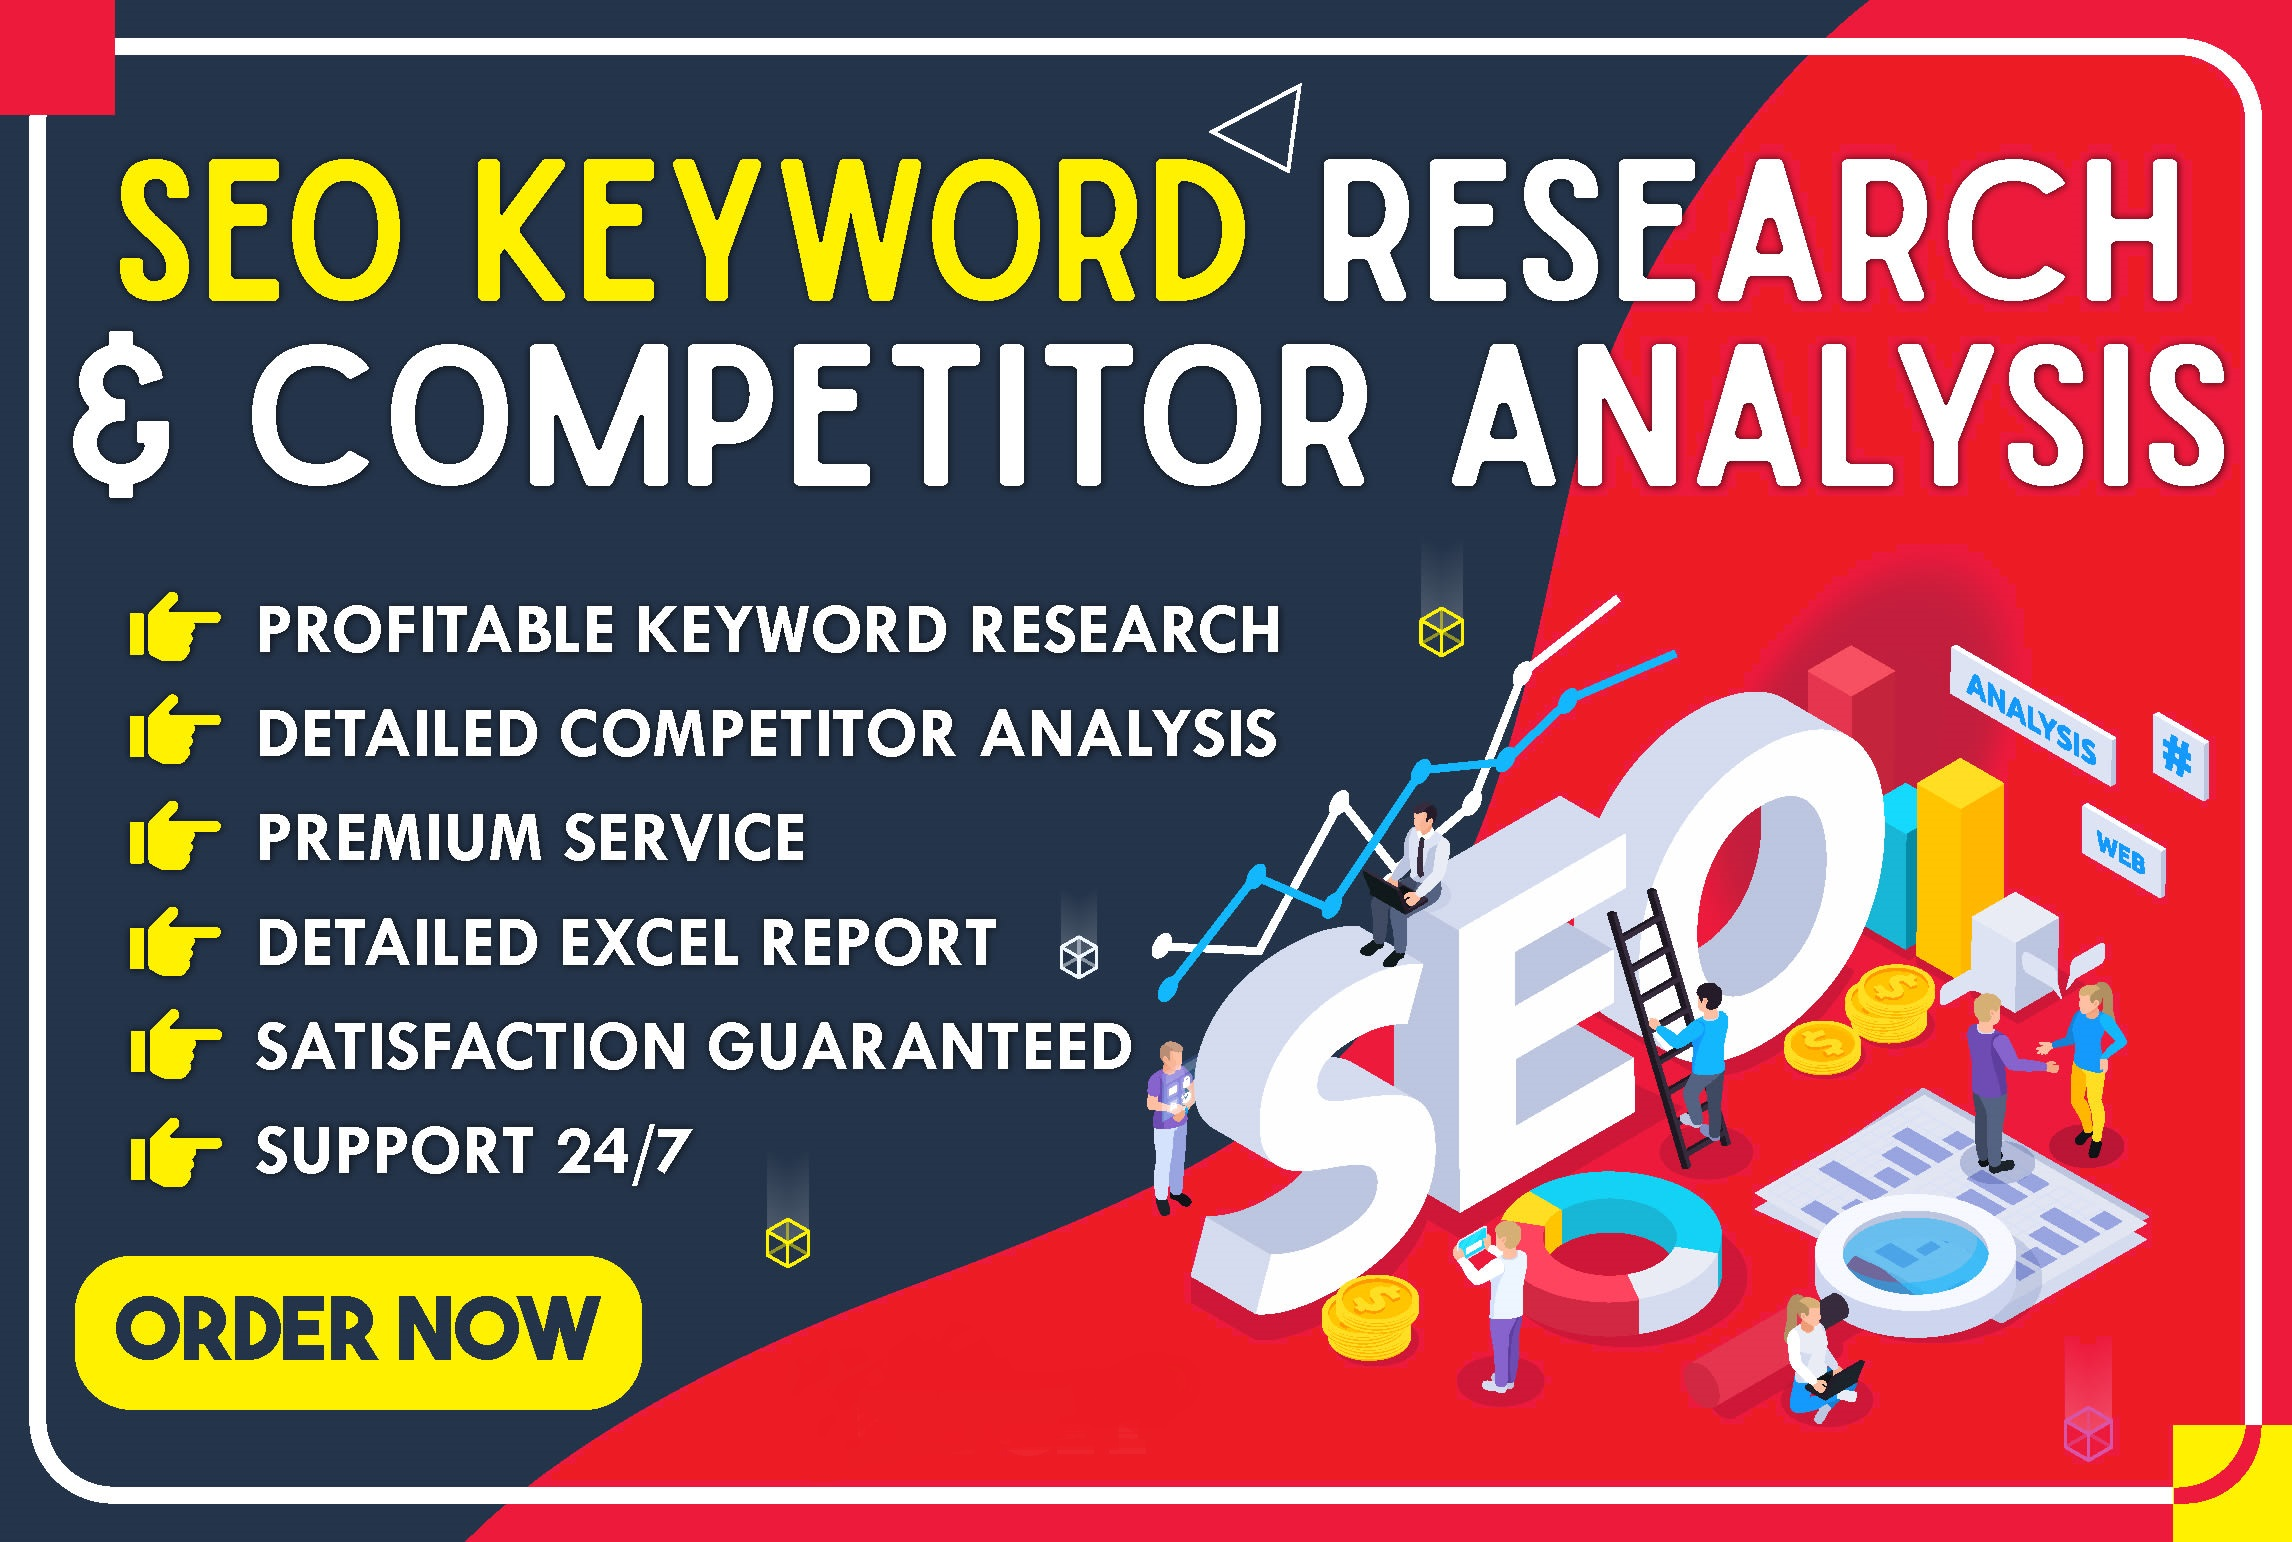 I will do some lucrative SEO keyword research and competitor analysis